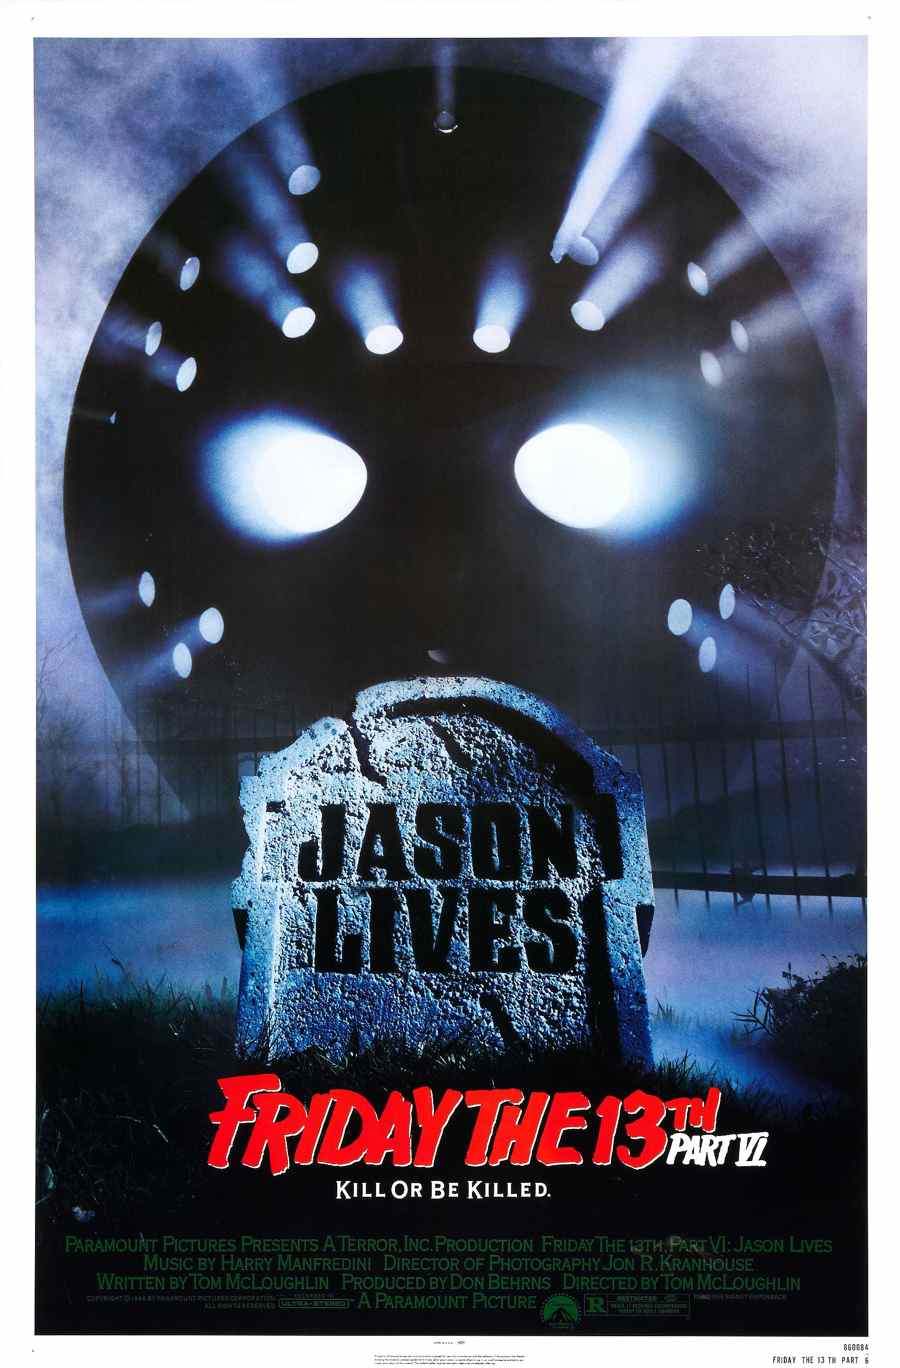 Friday the 13th Part VI Jason Lives poster